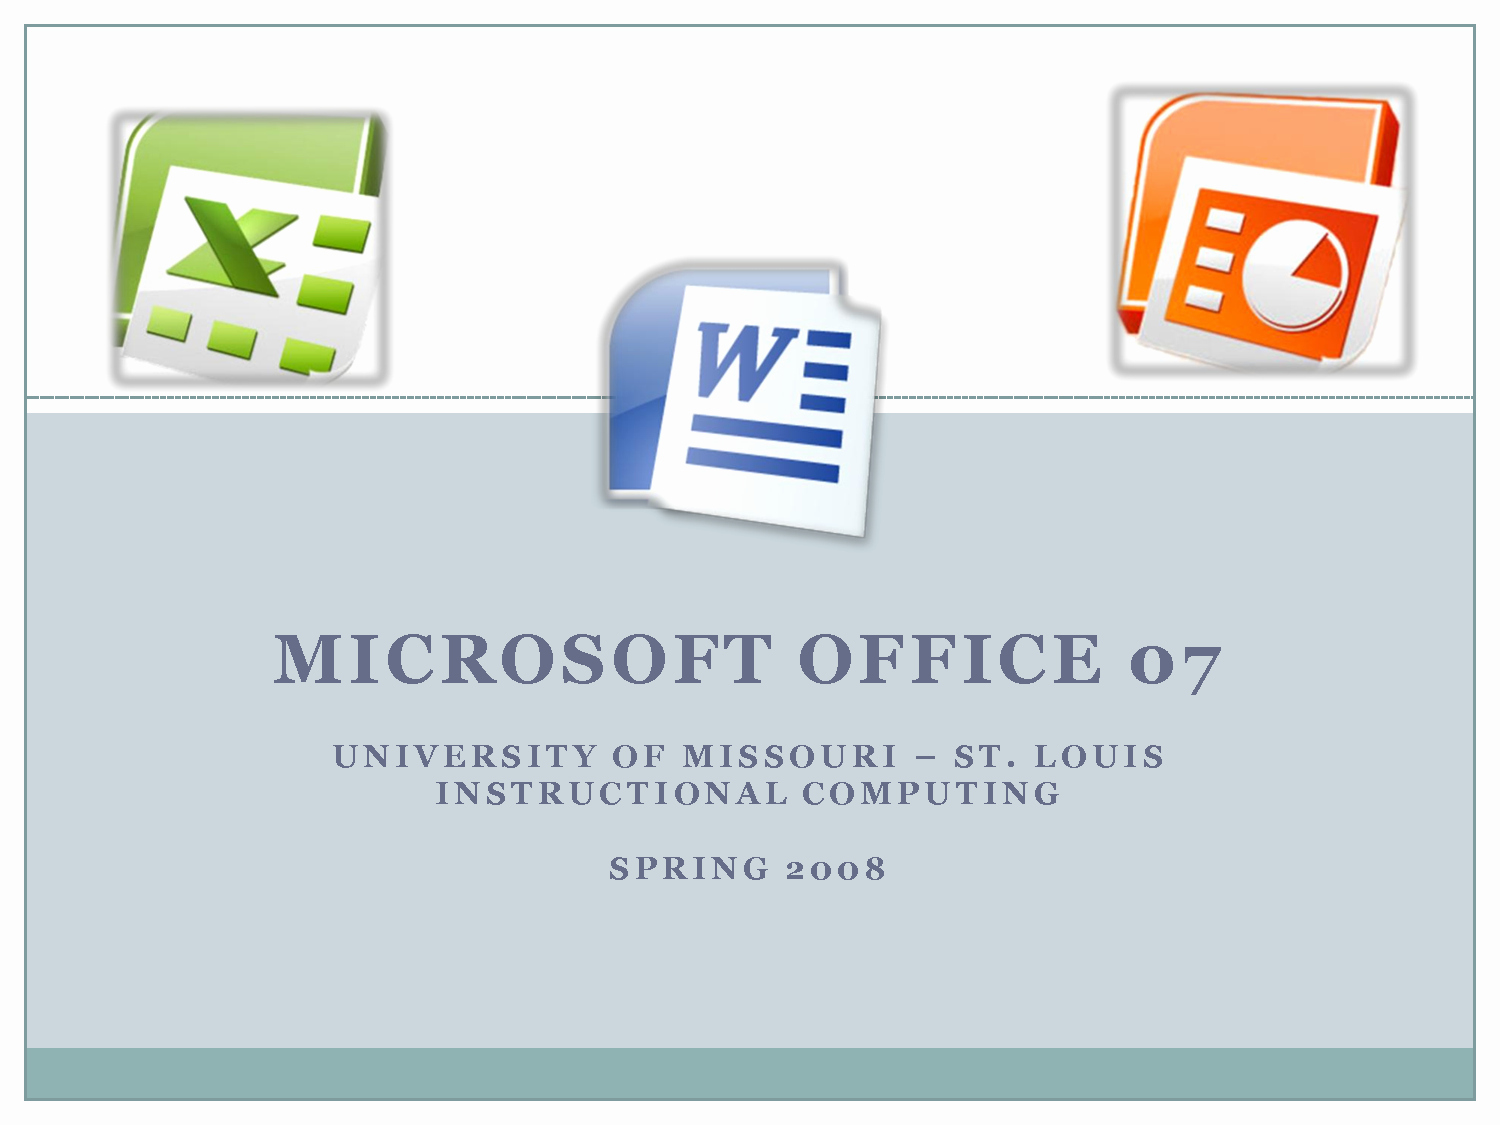 Microsoft Office Free Powerpoint Templates Lovely Microsoft Fice Powerpoint Templates